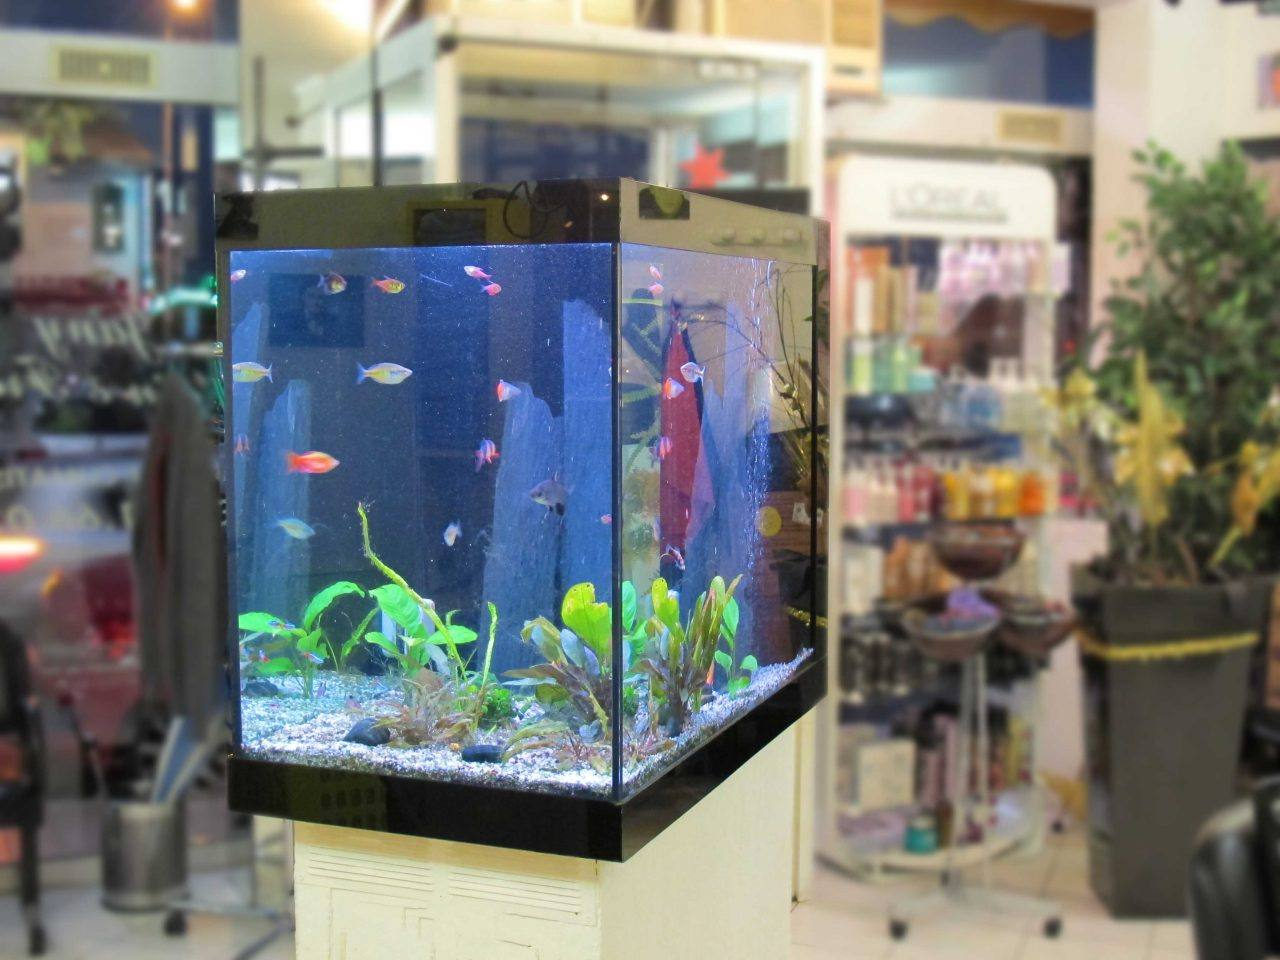 Fabrication vente aquariums eau douce odyssee aquarium for Decoration pour aquarium d eau douce